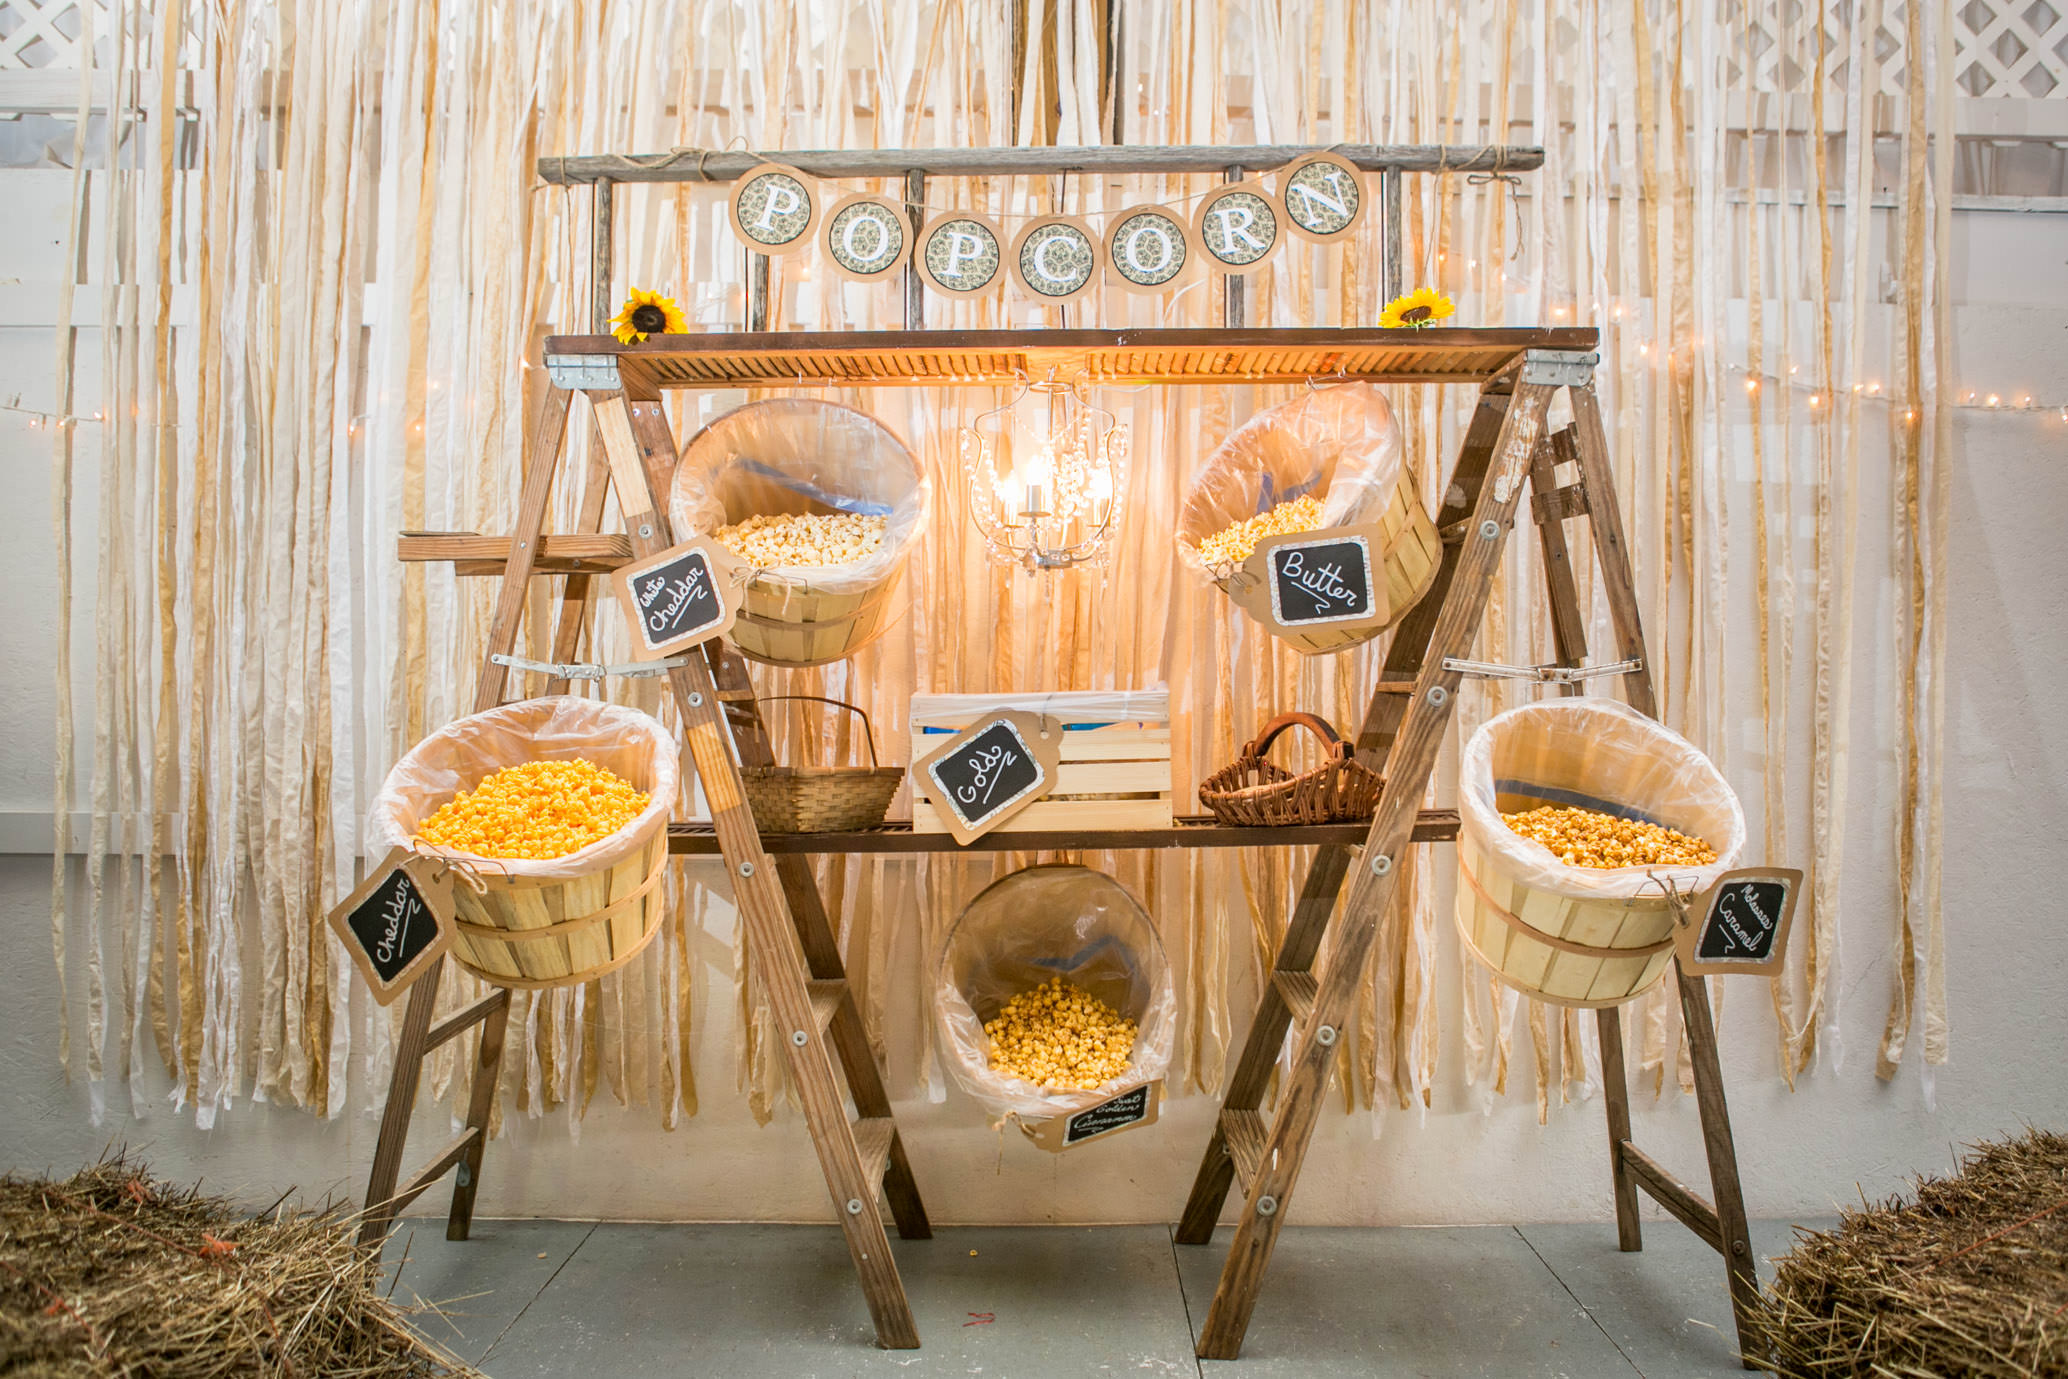 Rustic Chic Popcorn Display